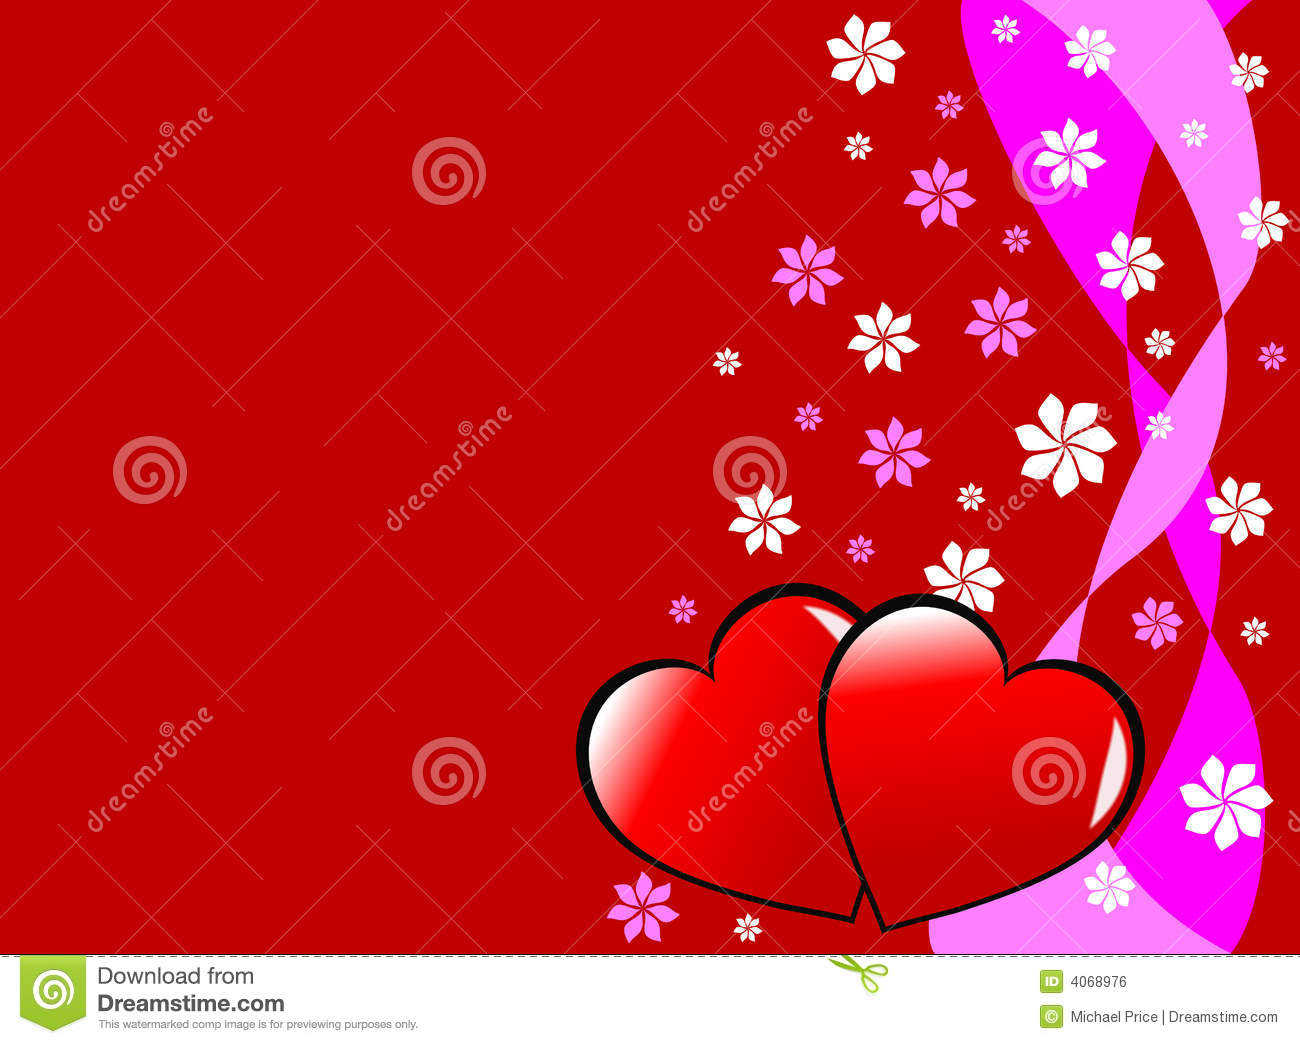 Gold Hearts With Flowers Royalty Free Stock Image - Image: 29105306